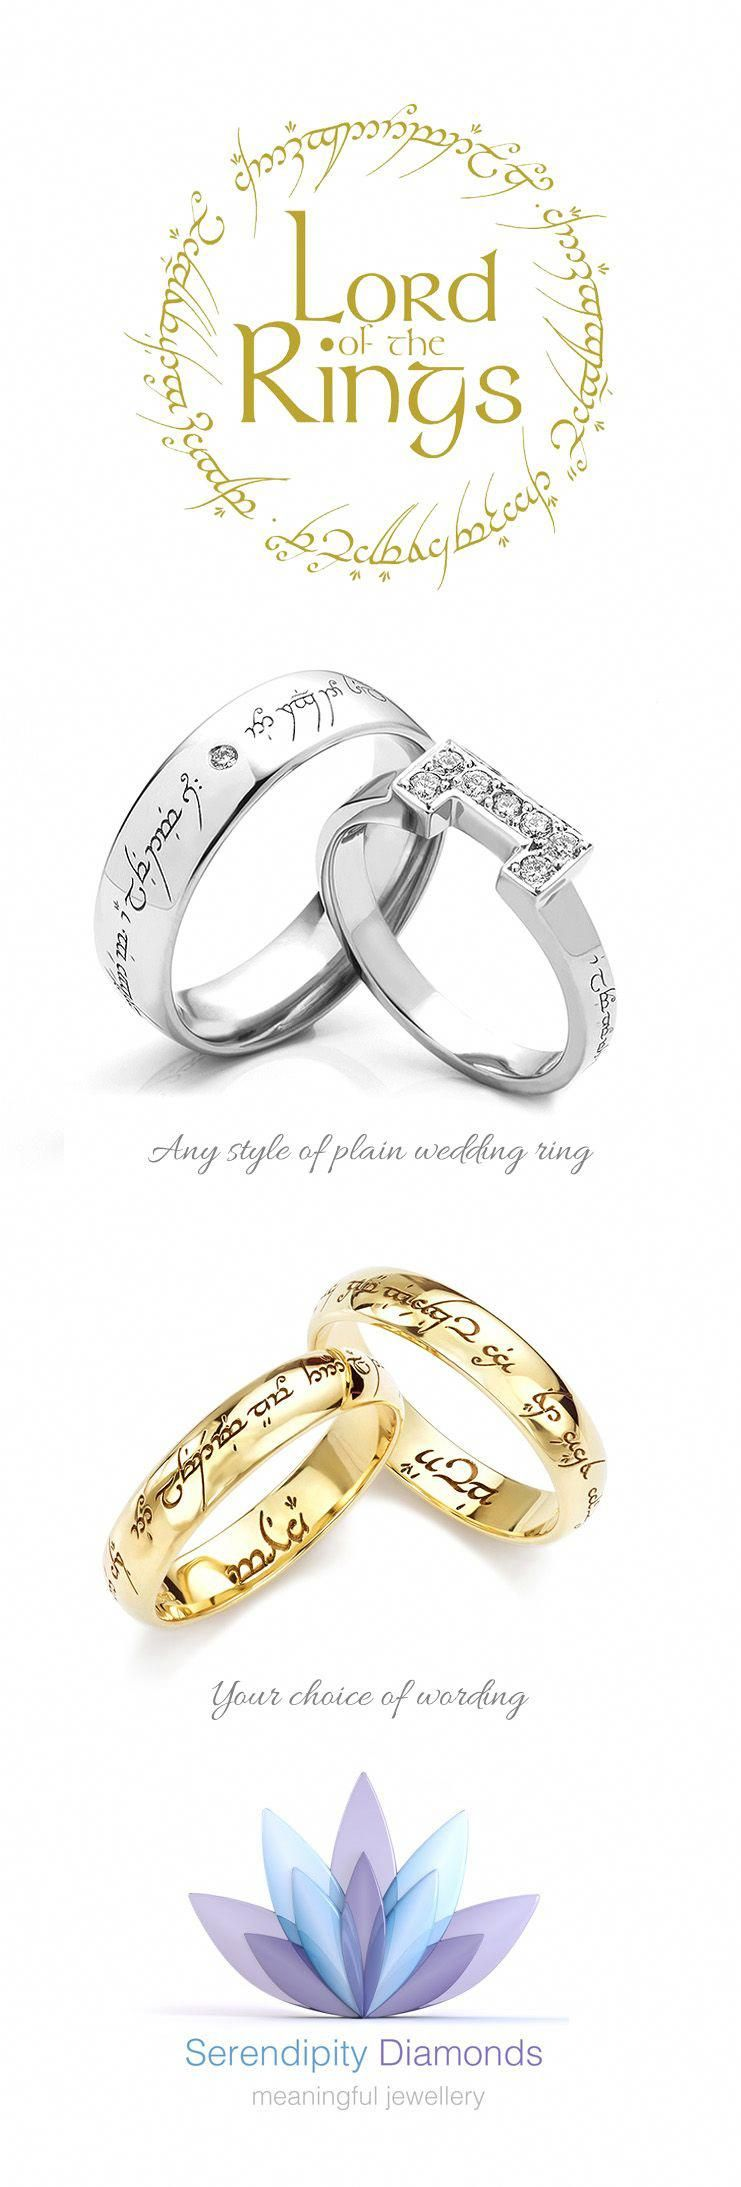 Lord Of The Rings Wedding Add An Elvish Engraving To Your